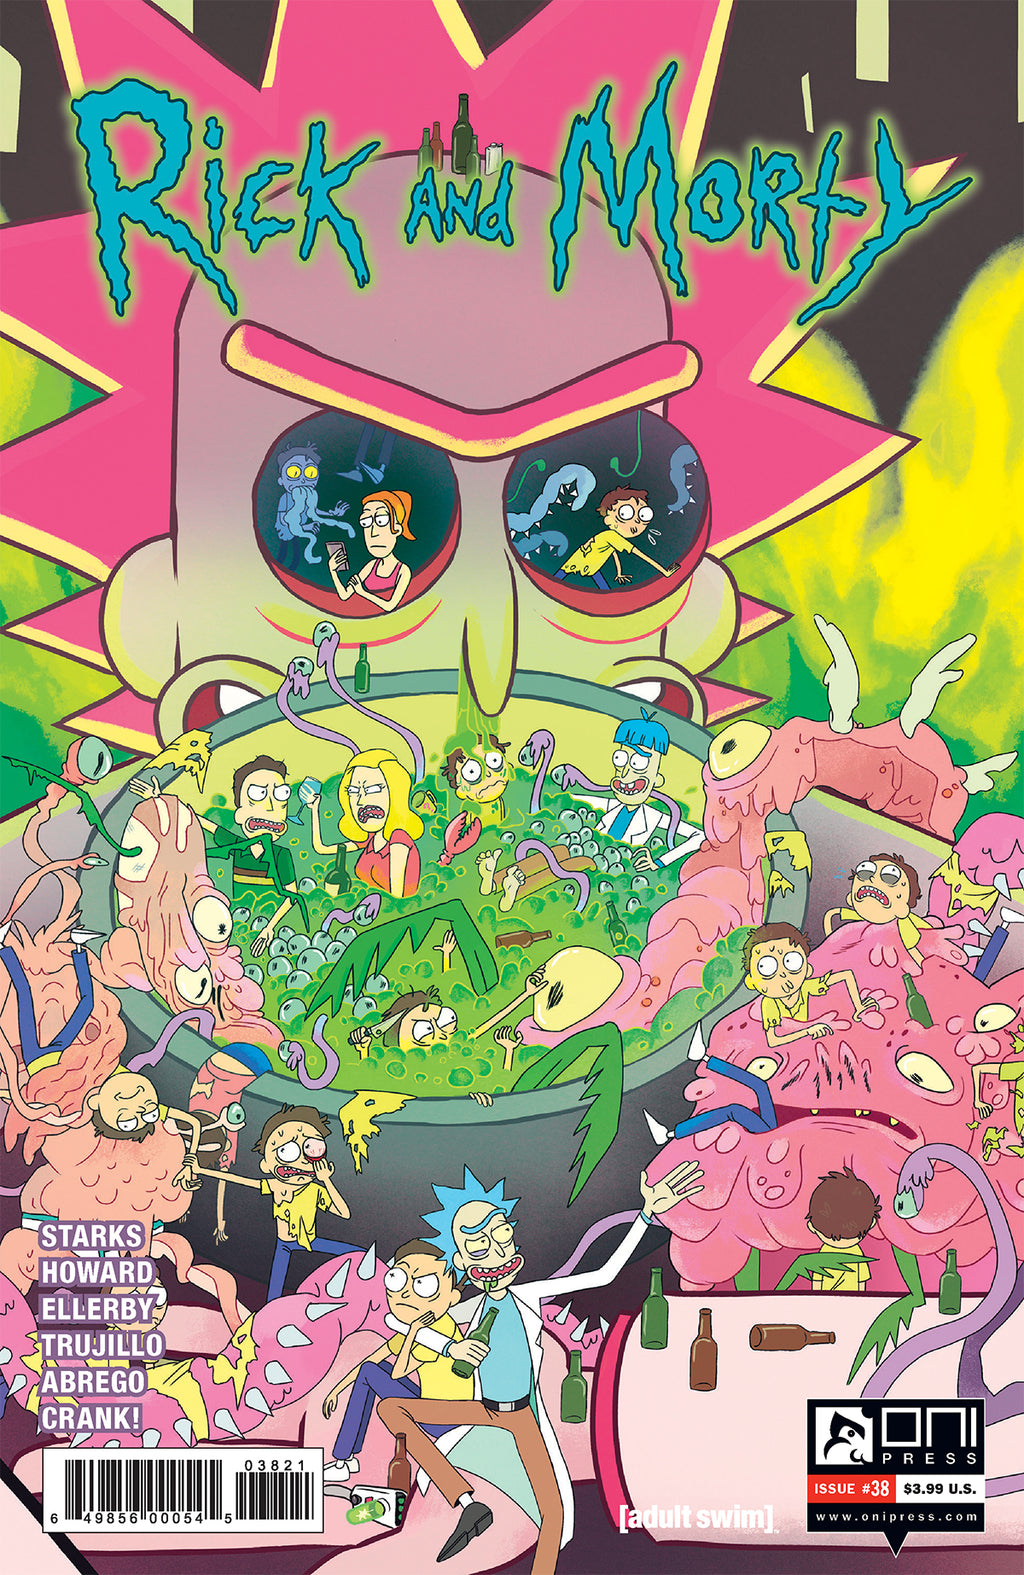 Rick and Morty #38 - Cover B